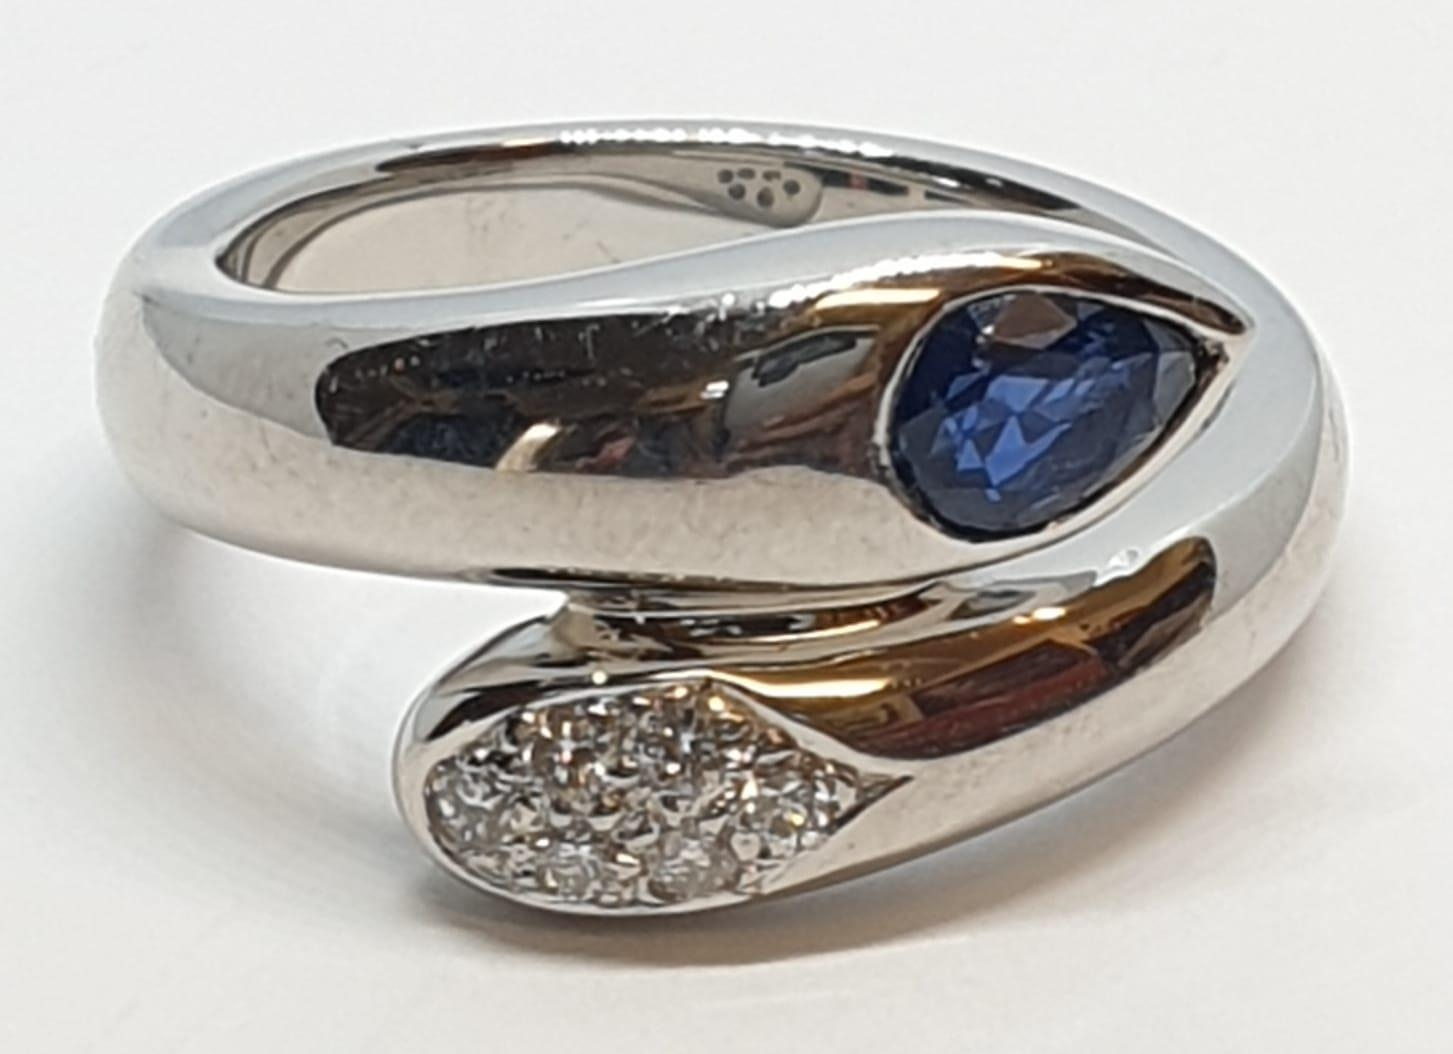 Platinum cross over ring with 0.60ct Thai sapphire and 0.30ct encrusted diamonds, weight 13.7g and - Image 8 of 10